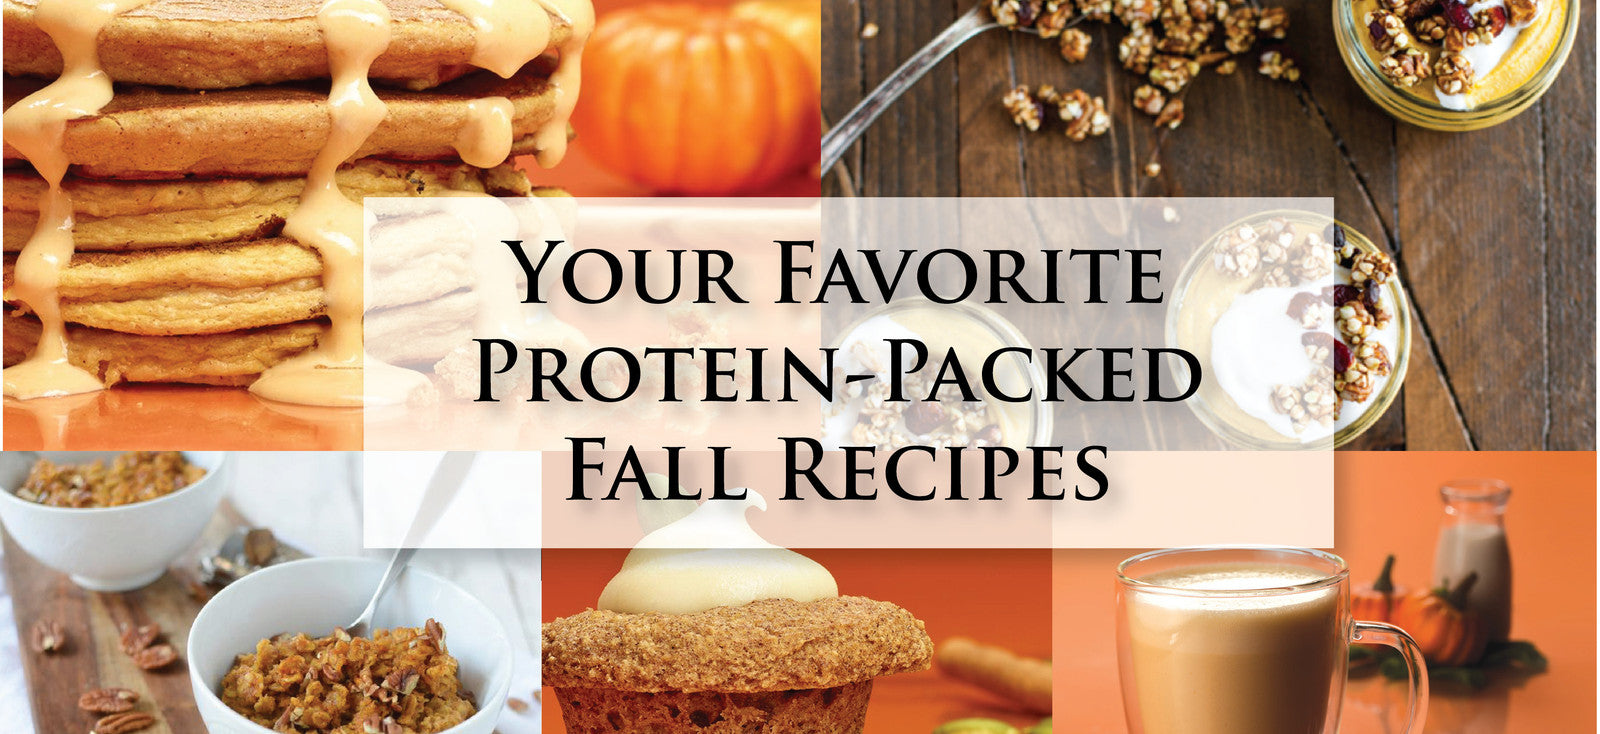 CarbEssentials Protein-Packed Fall Recipes